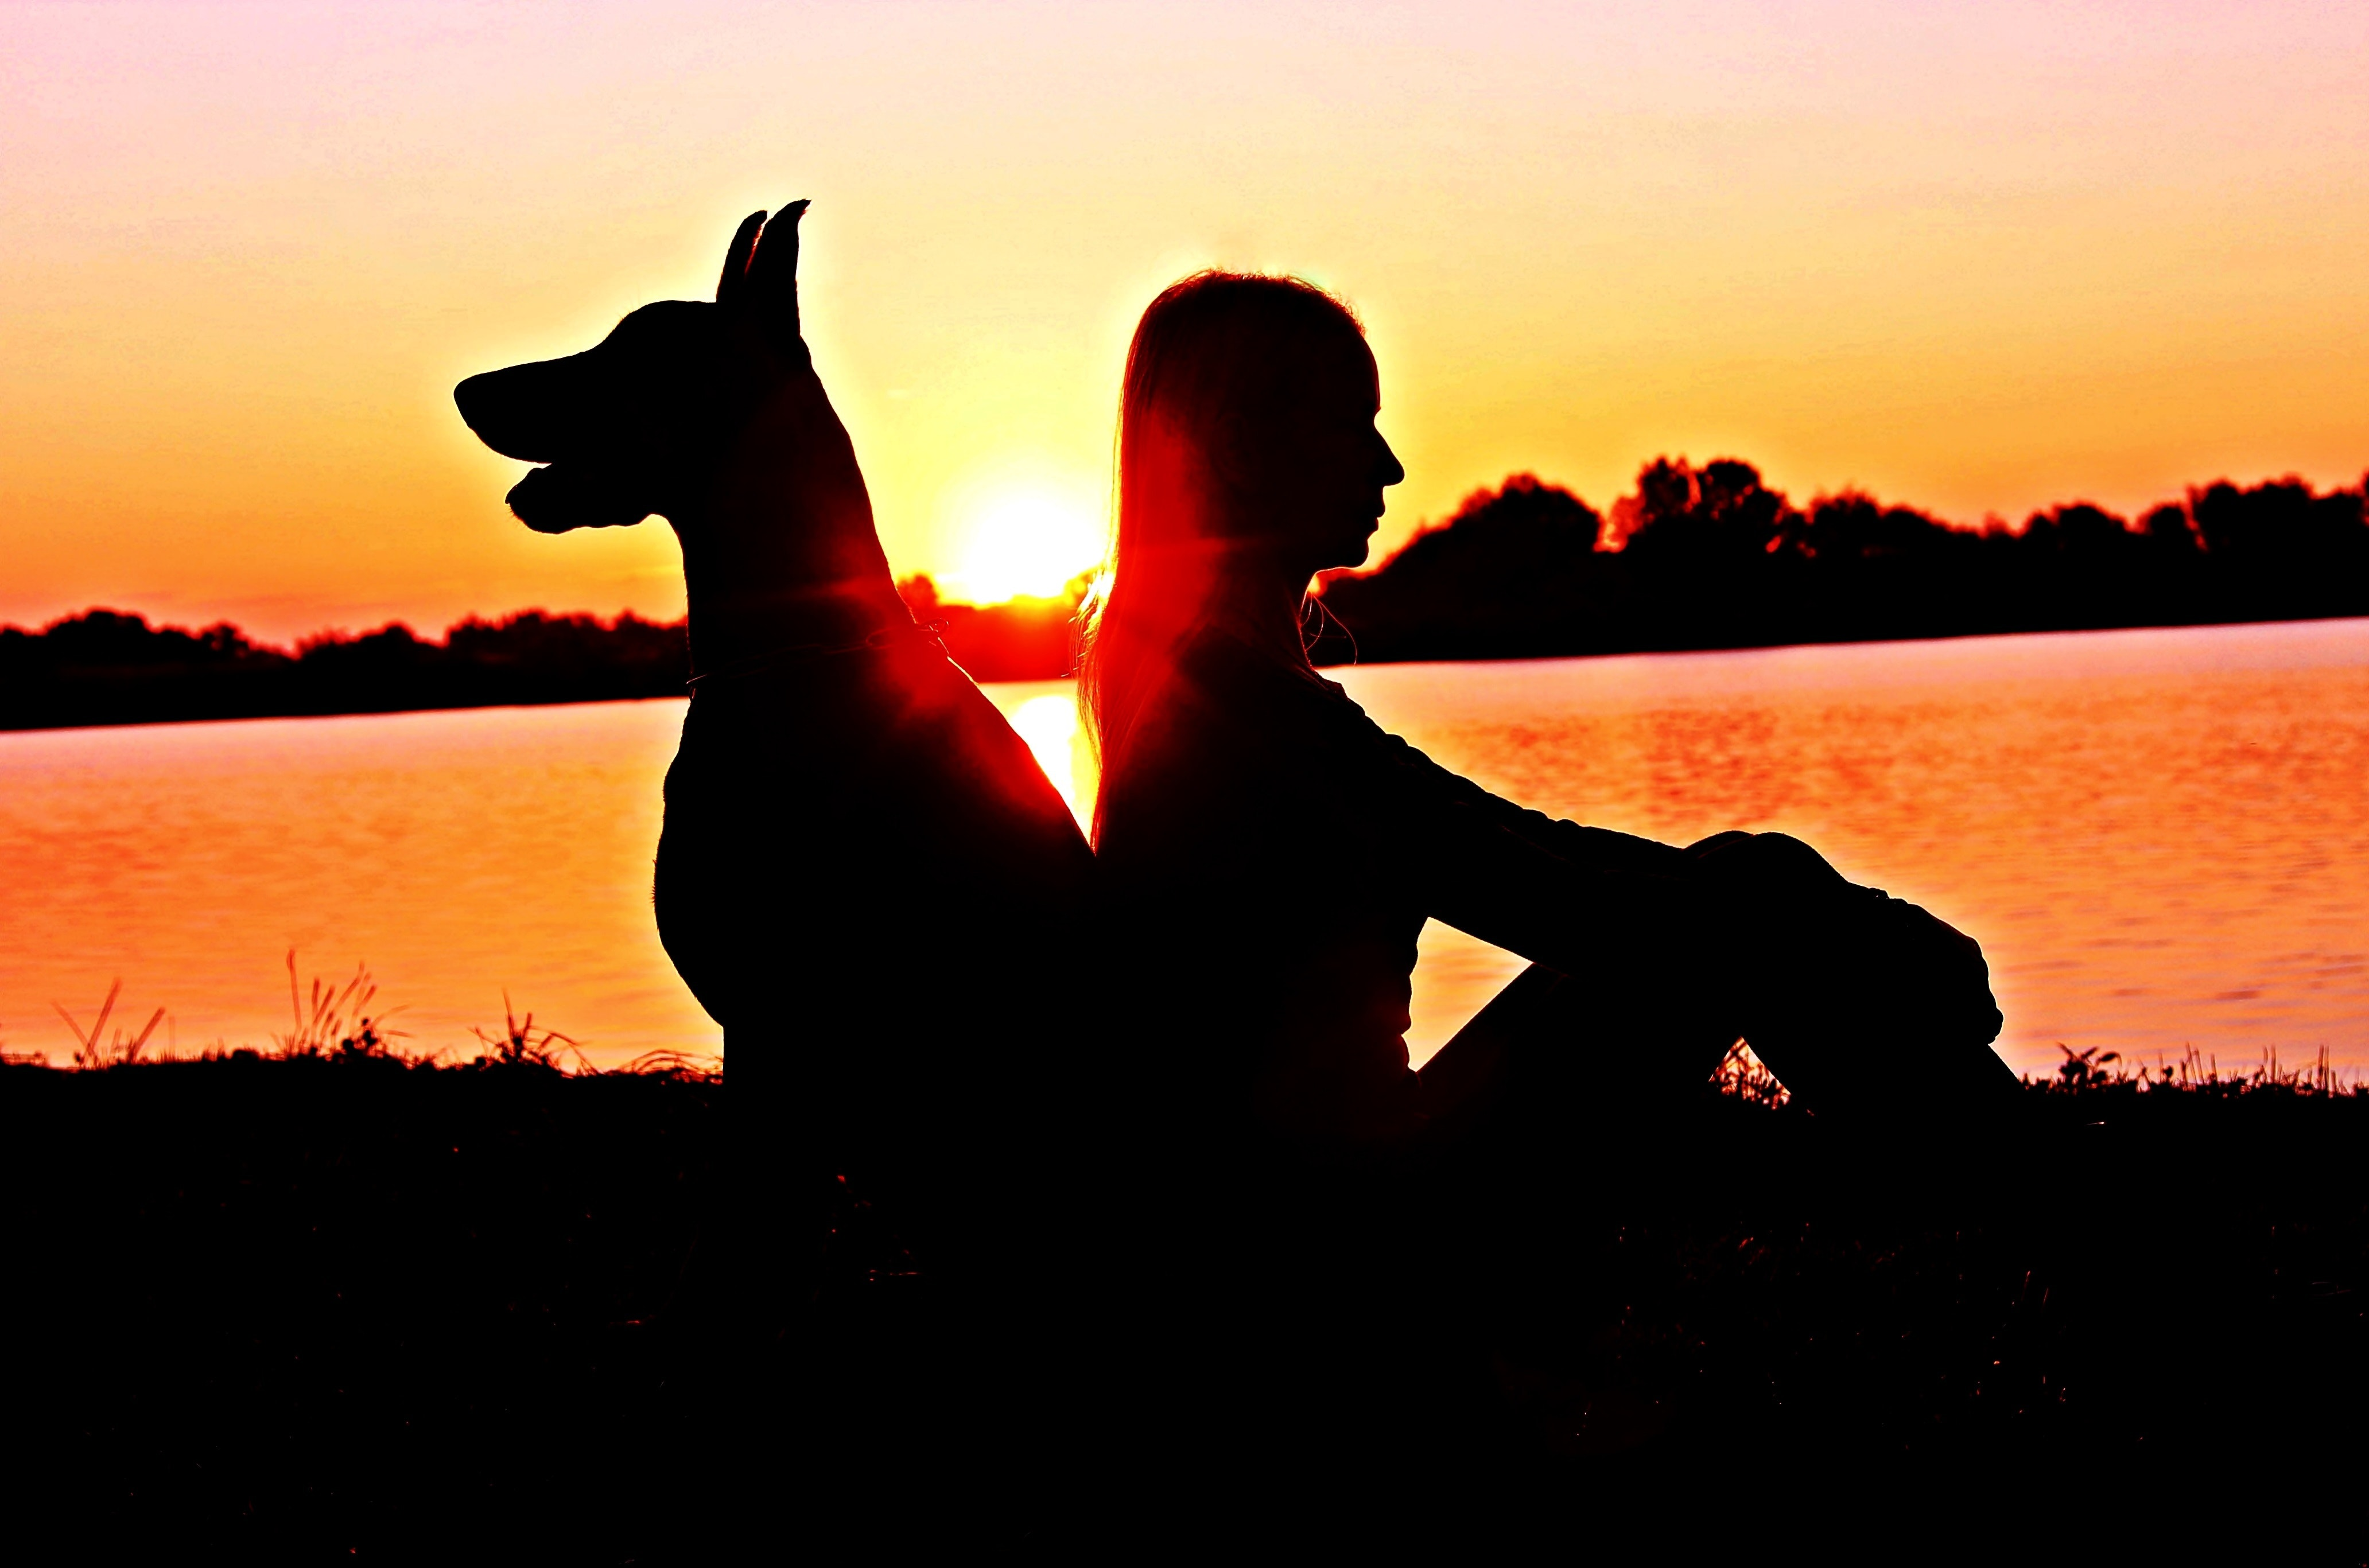 Silhouette Photo Of Man An Dog During Sunset 183 Free Stock